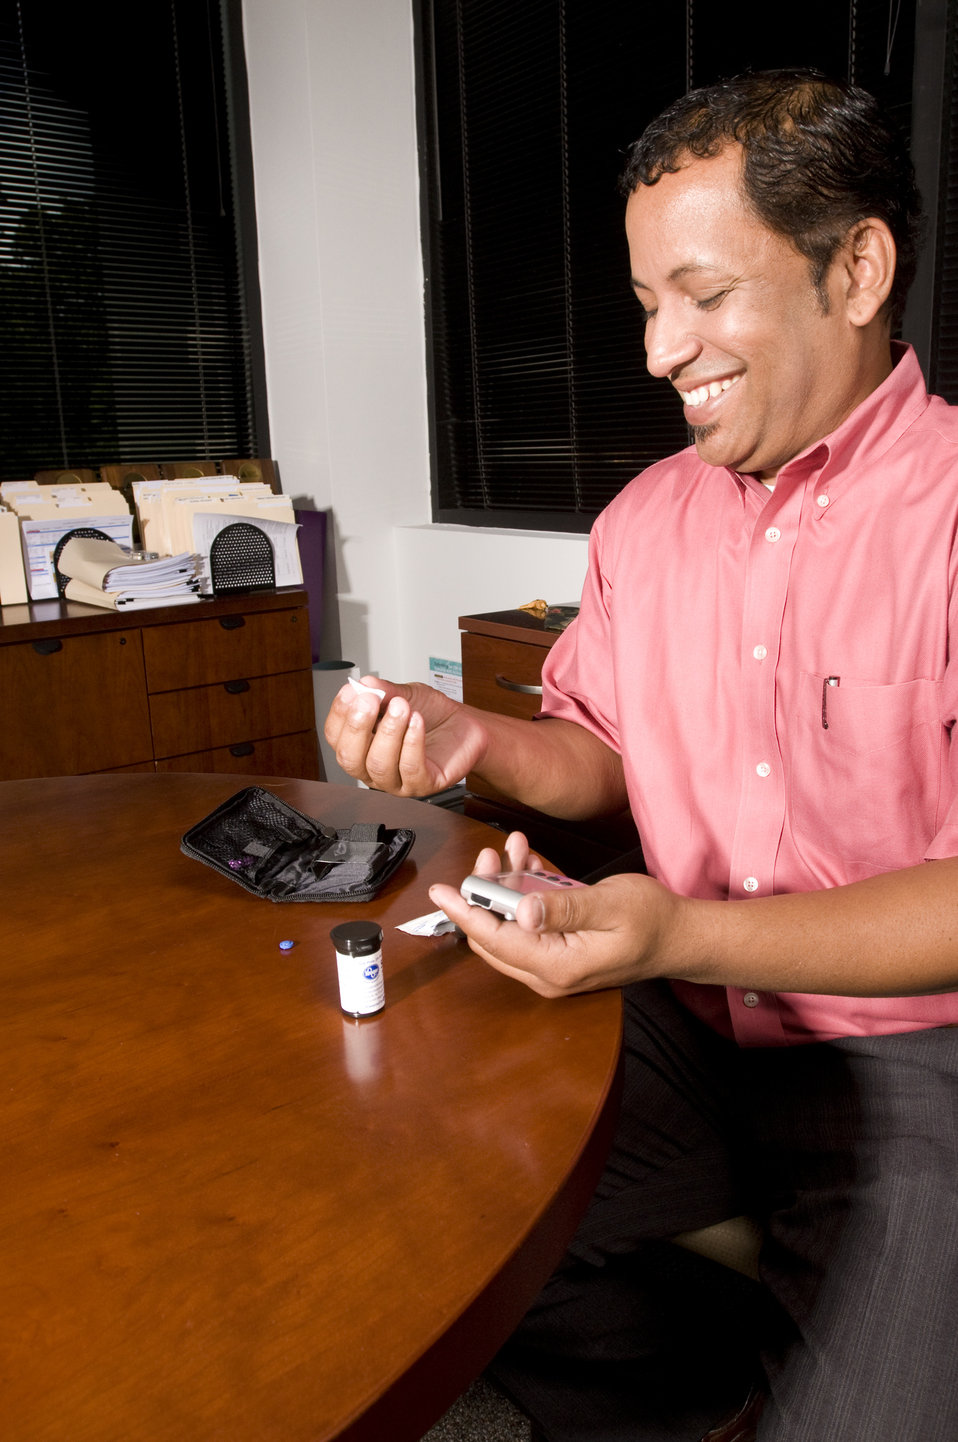 The man pictured here was checking his blood glucose level. This process is known as self-monitoring blood glucose, and it's a way for peopl